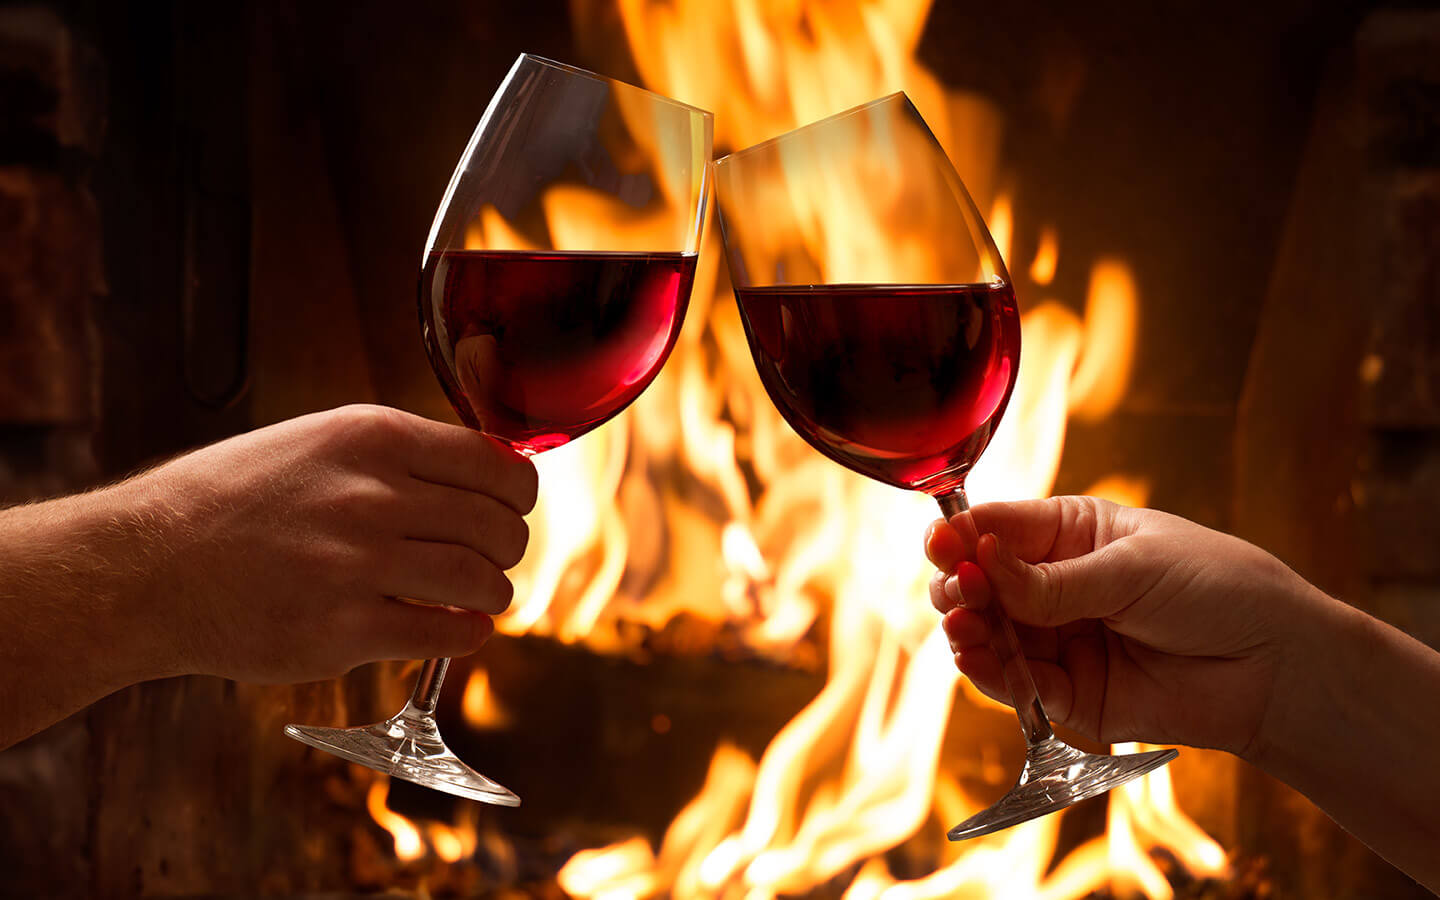 Toasting wine glasses in front of fireplace